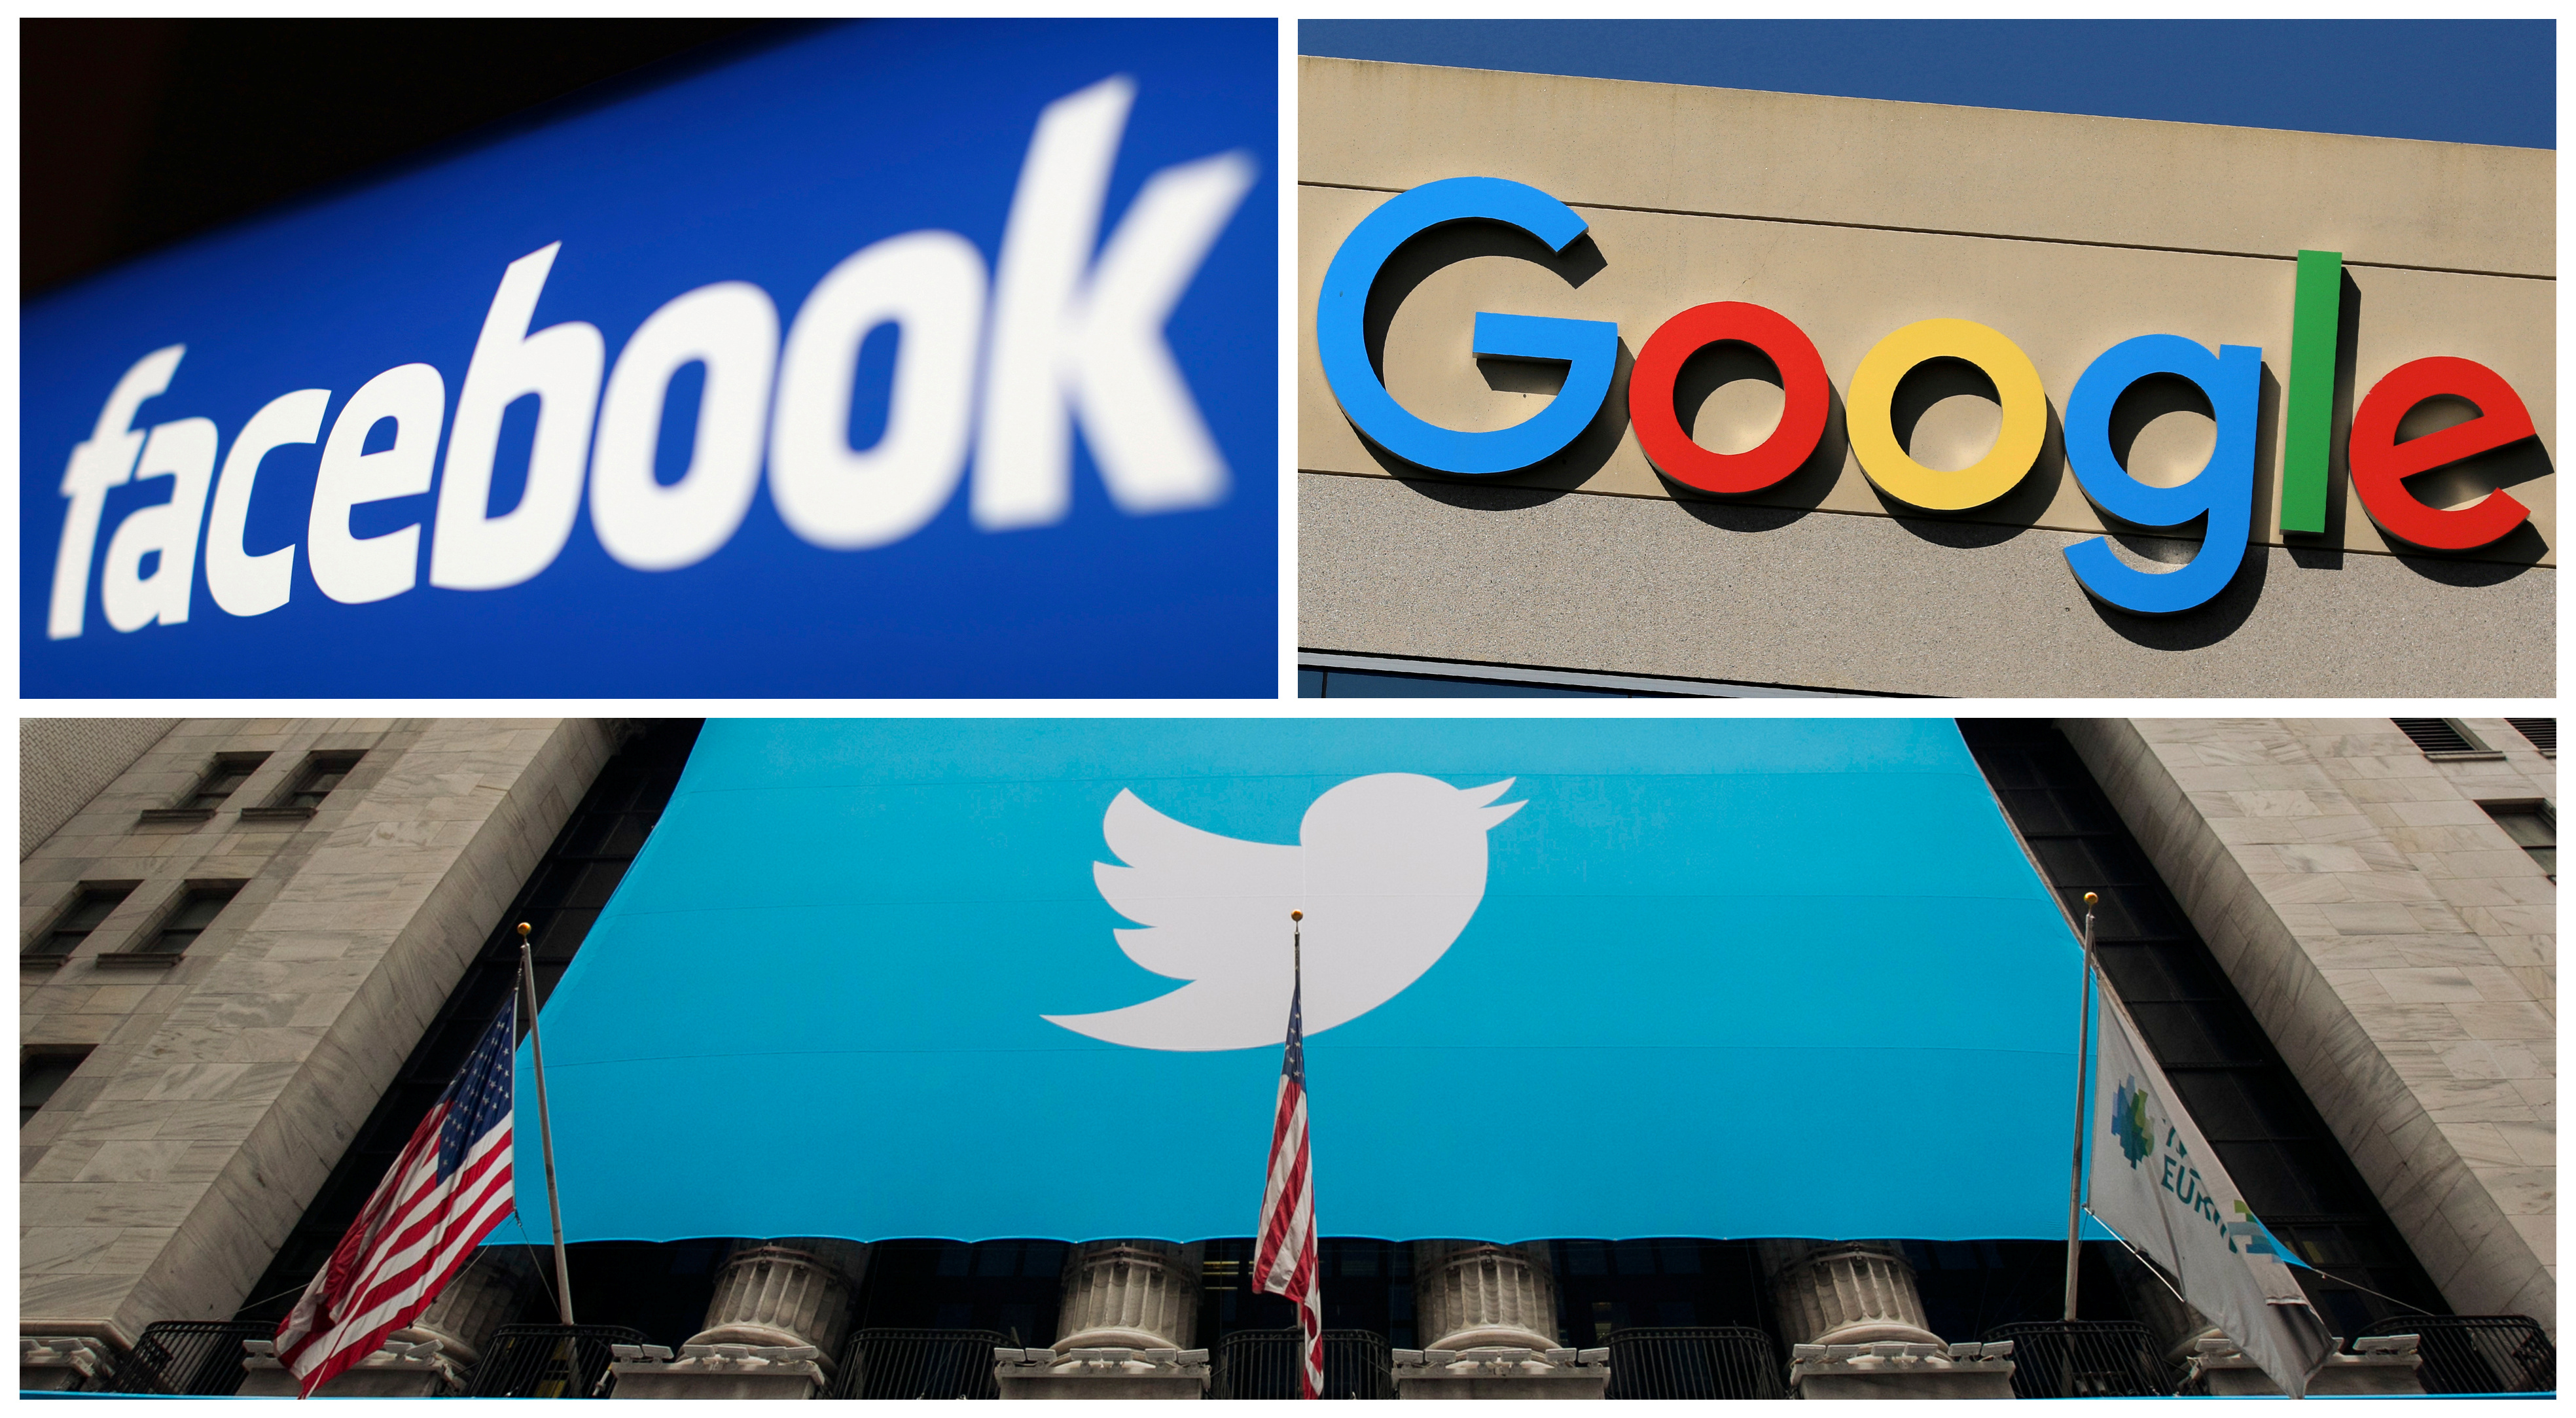 Facebook, Google and Twitter logos are seen in this combination photo from Reuters files. REUTERS/File Photos - RC1A2AC56CF0